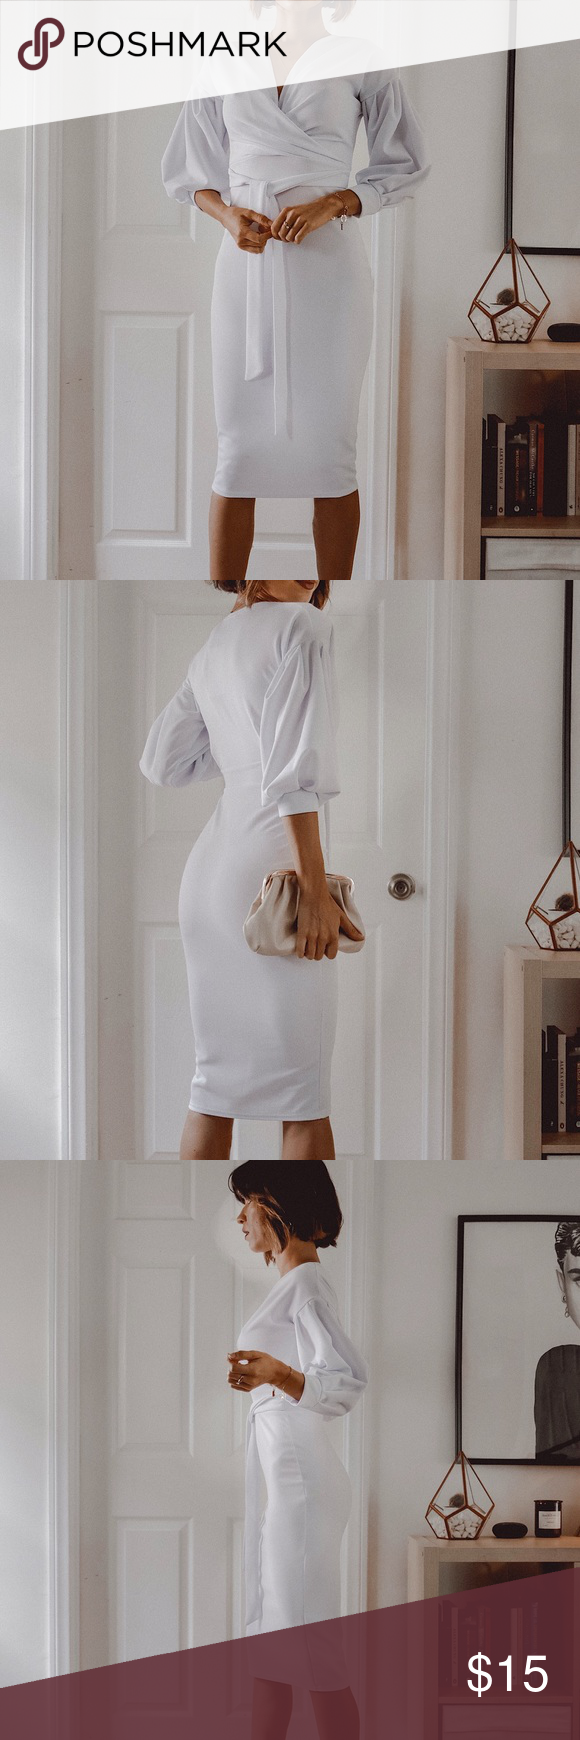 White Body Con Dress By Femmelux New In Perfect Condition Stretchy Has Belt Dresses Midi White Bodies Bodycon Dress Bodycon [ 1740 x 580 Pixel ]